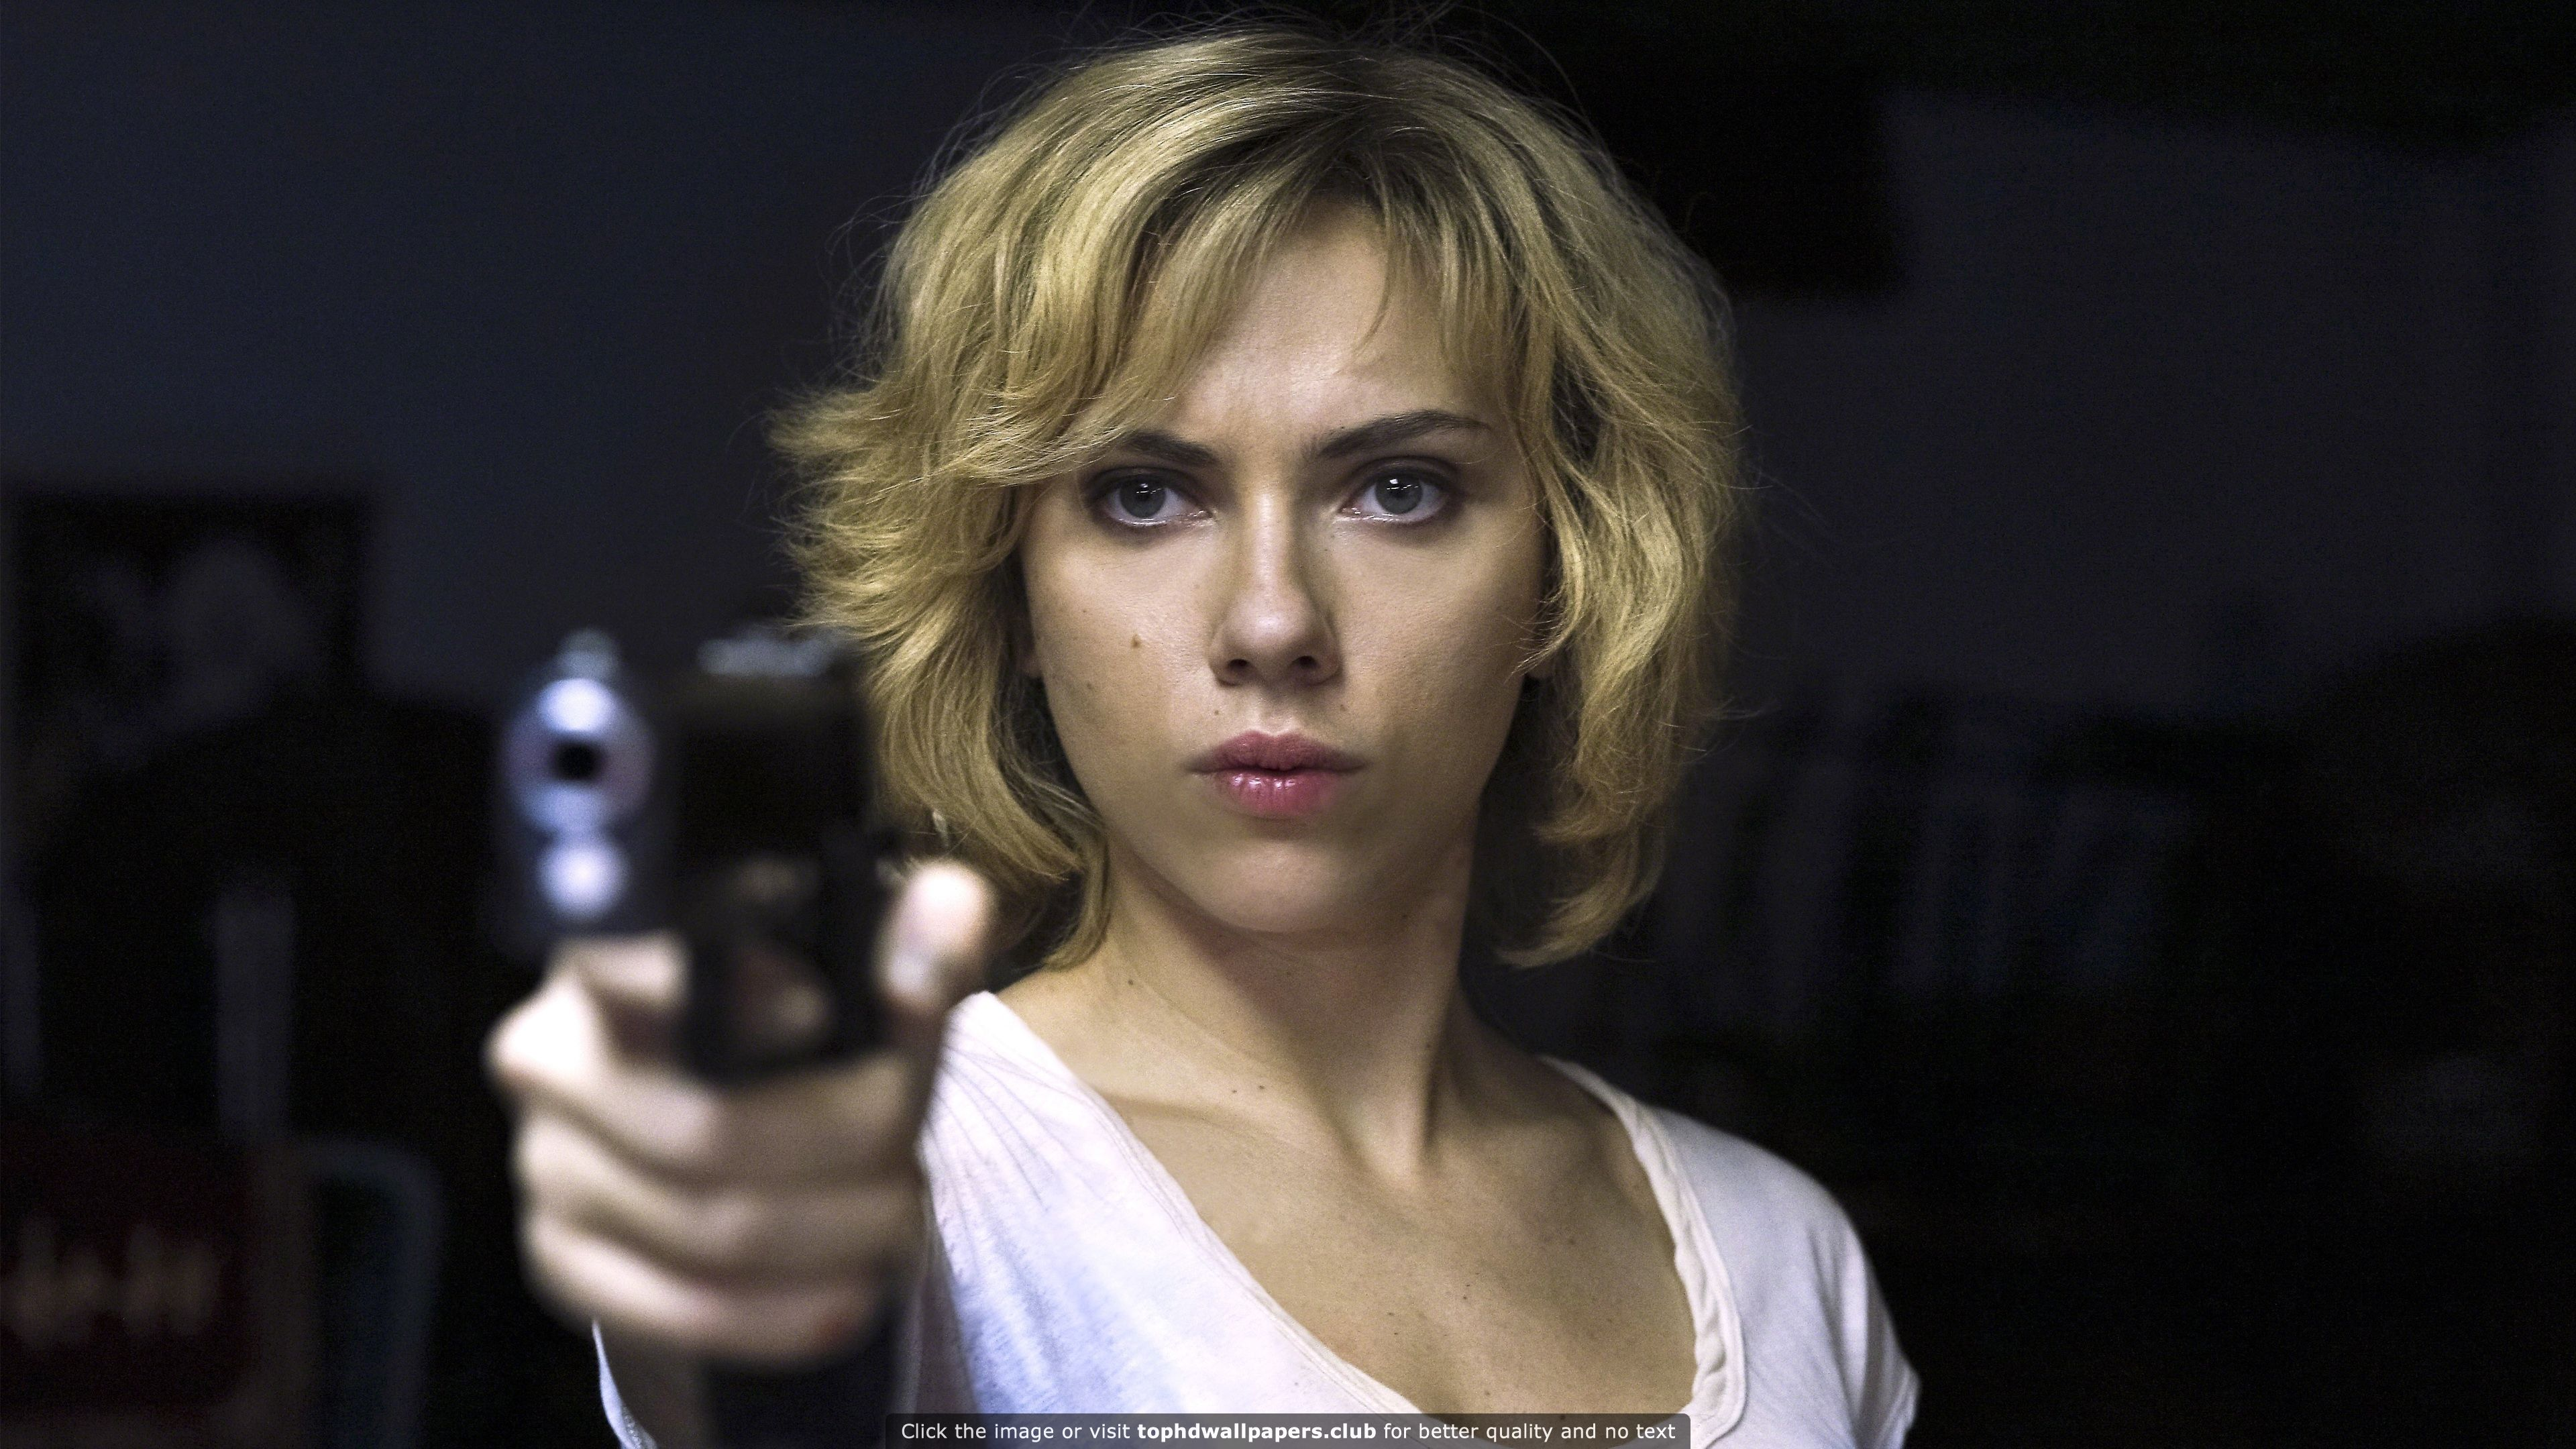 Scarlett Johansson Lucy Hd Wallpaper For Your Pc Mac Or Mobile